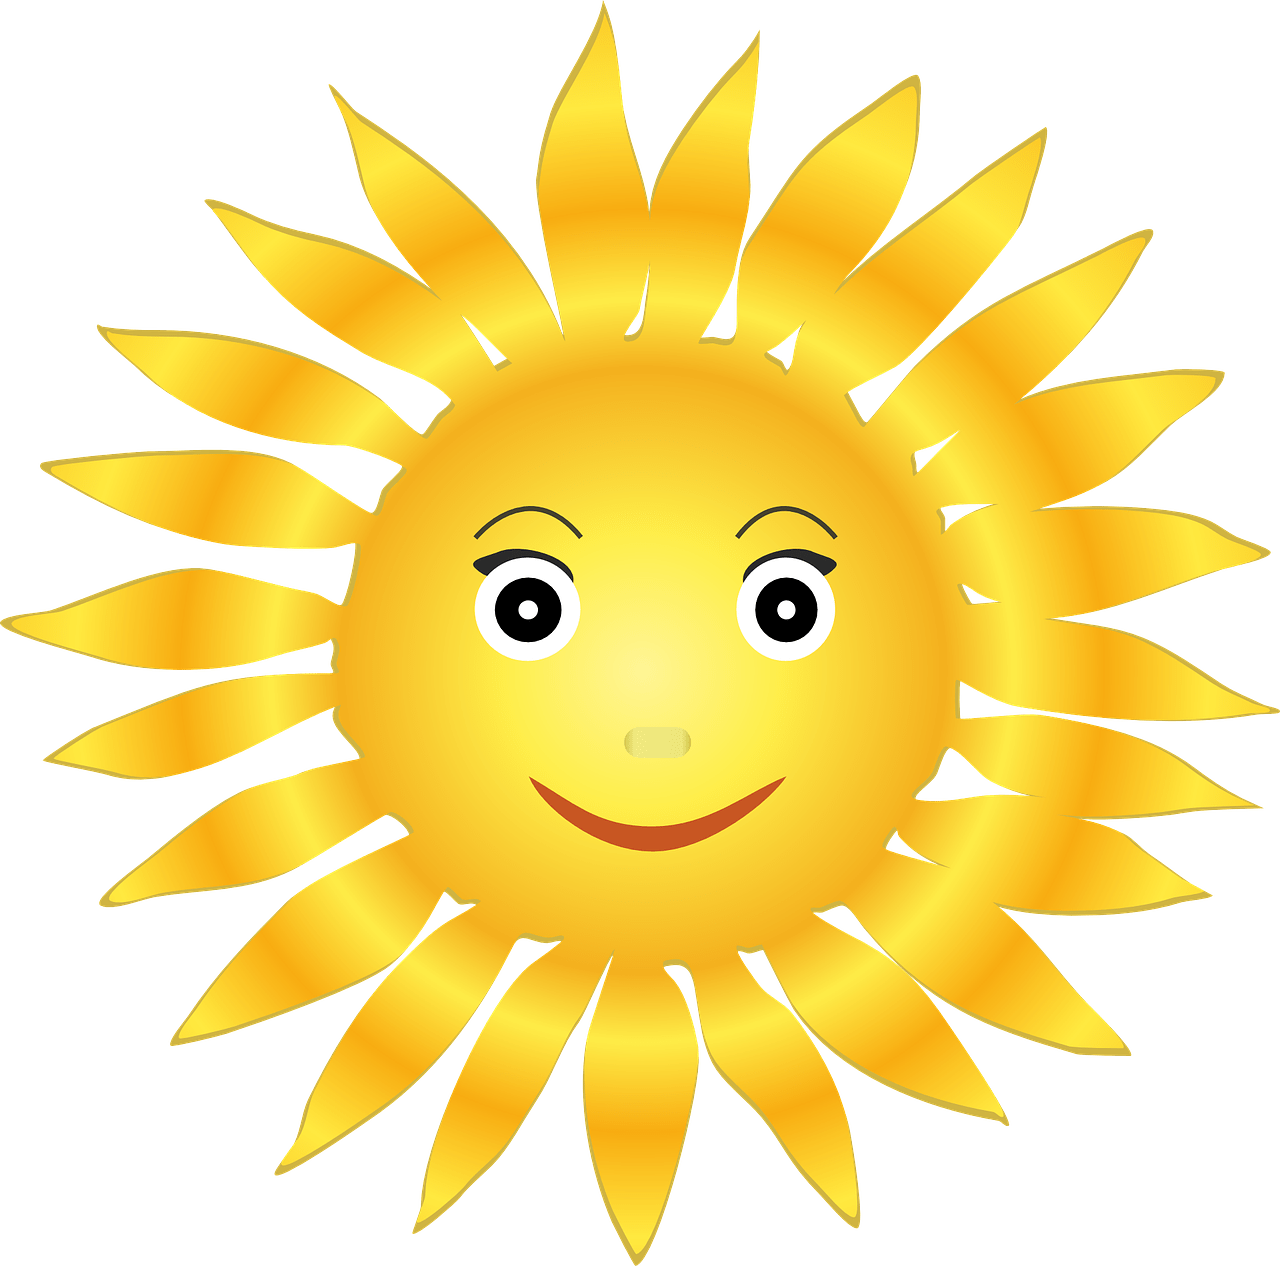 Wake up sunshine clipart jpg library Clipart sunshine wake up sun, Clipart sunshine wake up sun ... jpg library